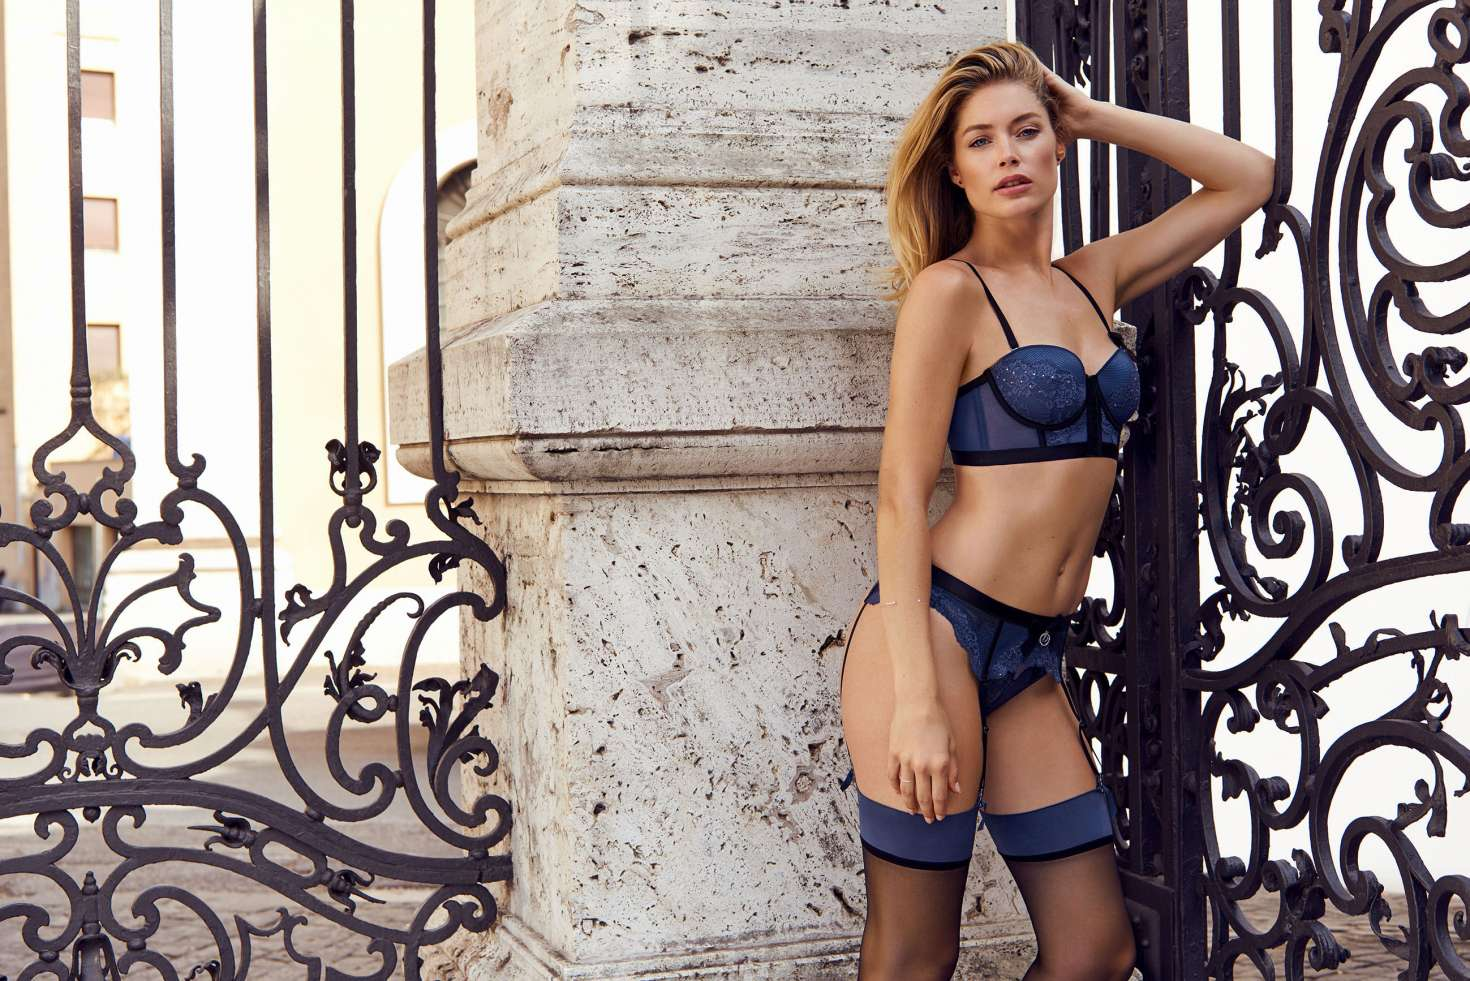 Doutzen Kroes – Hunkemoller Photoshoot 2016   Doutzen-Kroes:-Hunkemoller-Photoshoot-2016--09